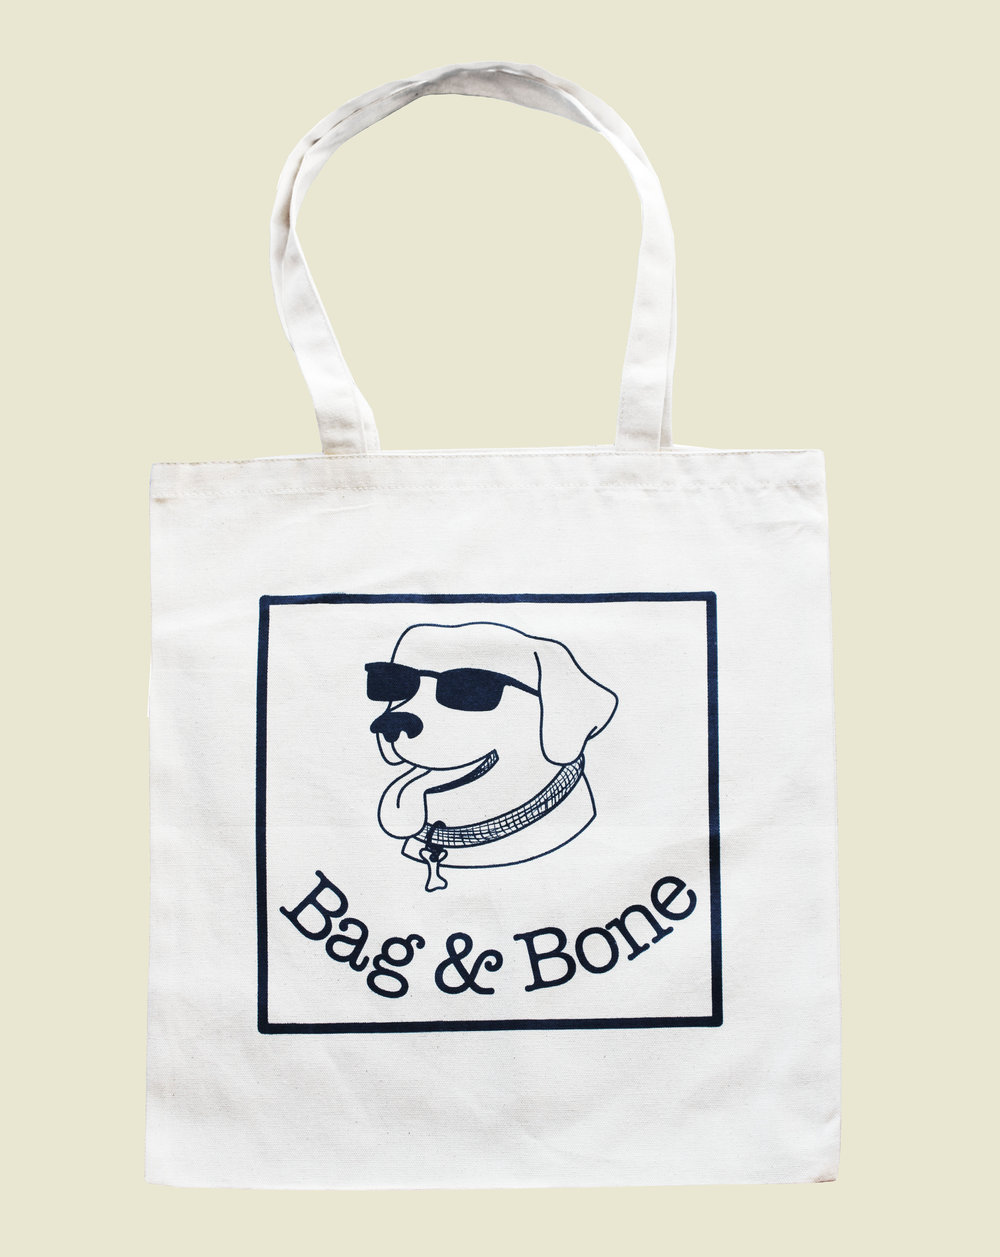 Limited edition Tote Bags with a Bag&Bone logo are also available.